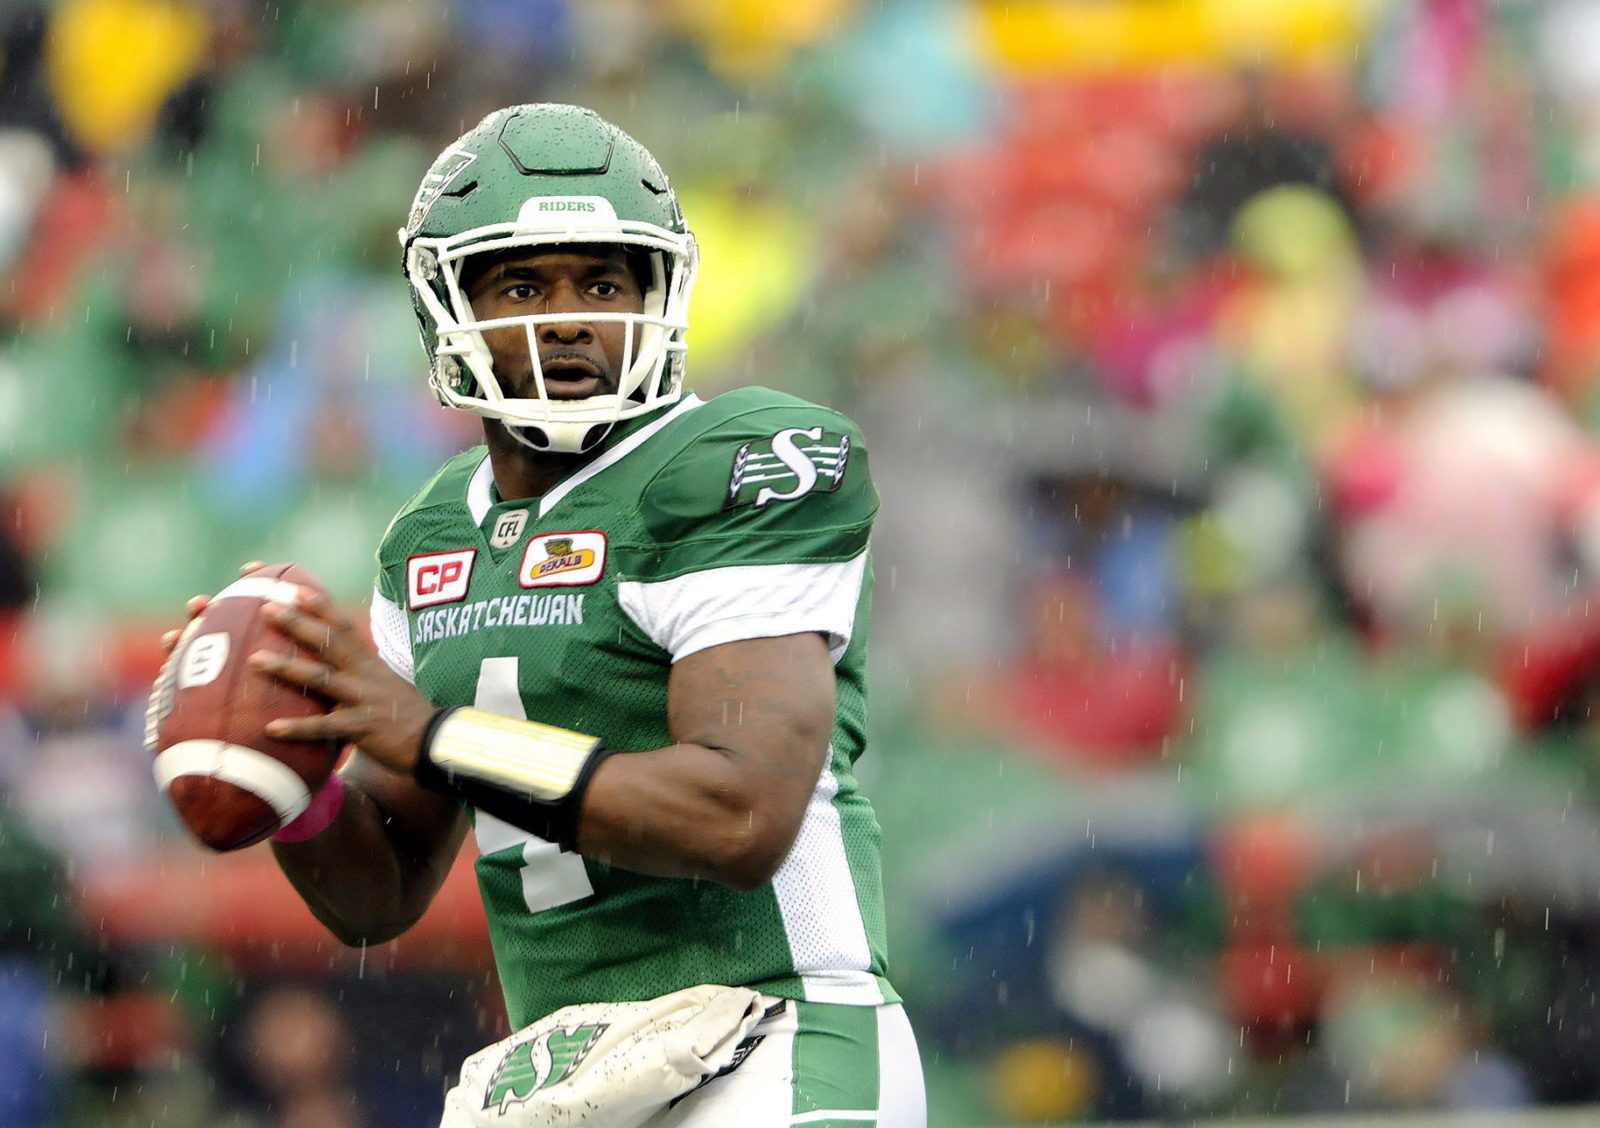 Former Rider QB Durant has called it a career